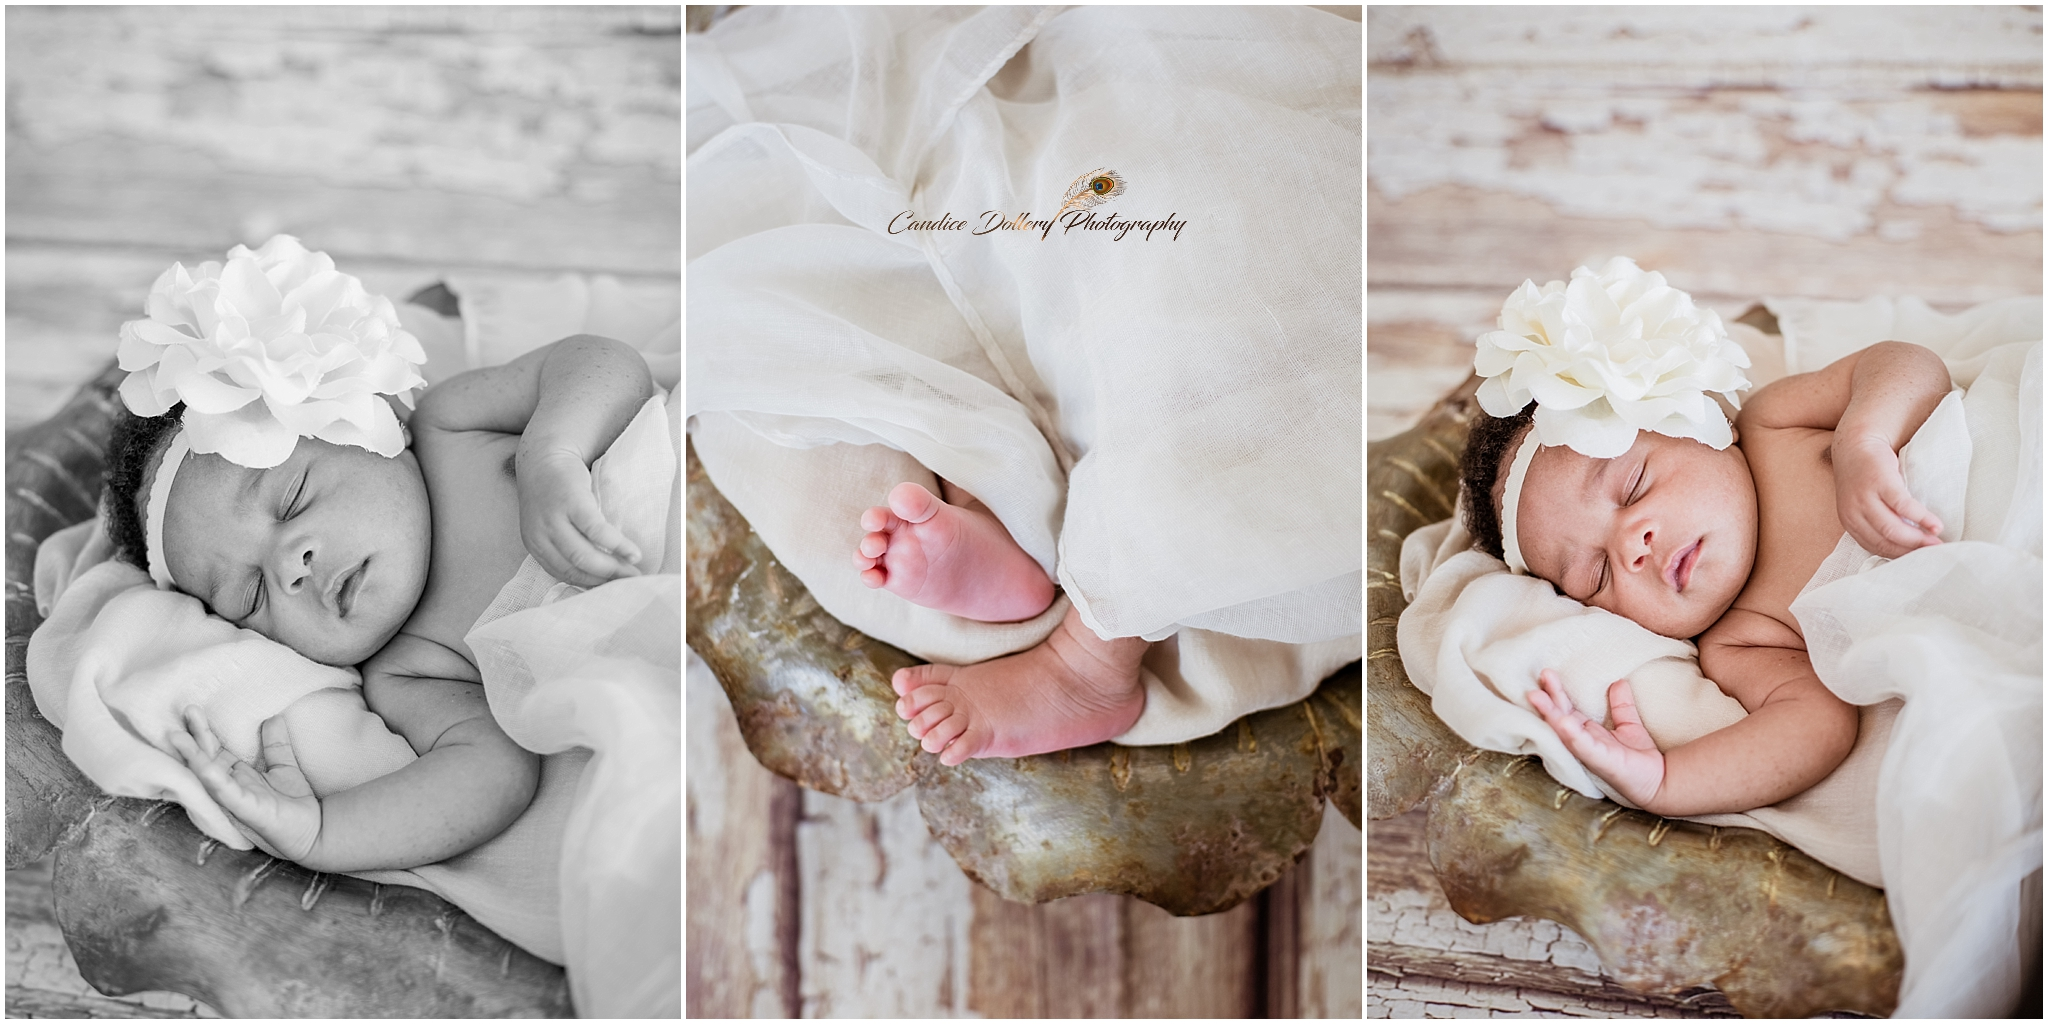 Newborn - Candice Dollery Photography_036